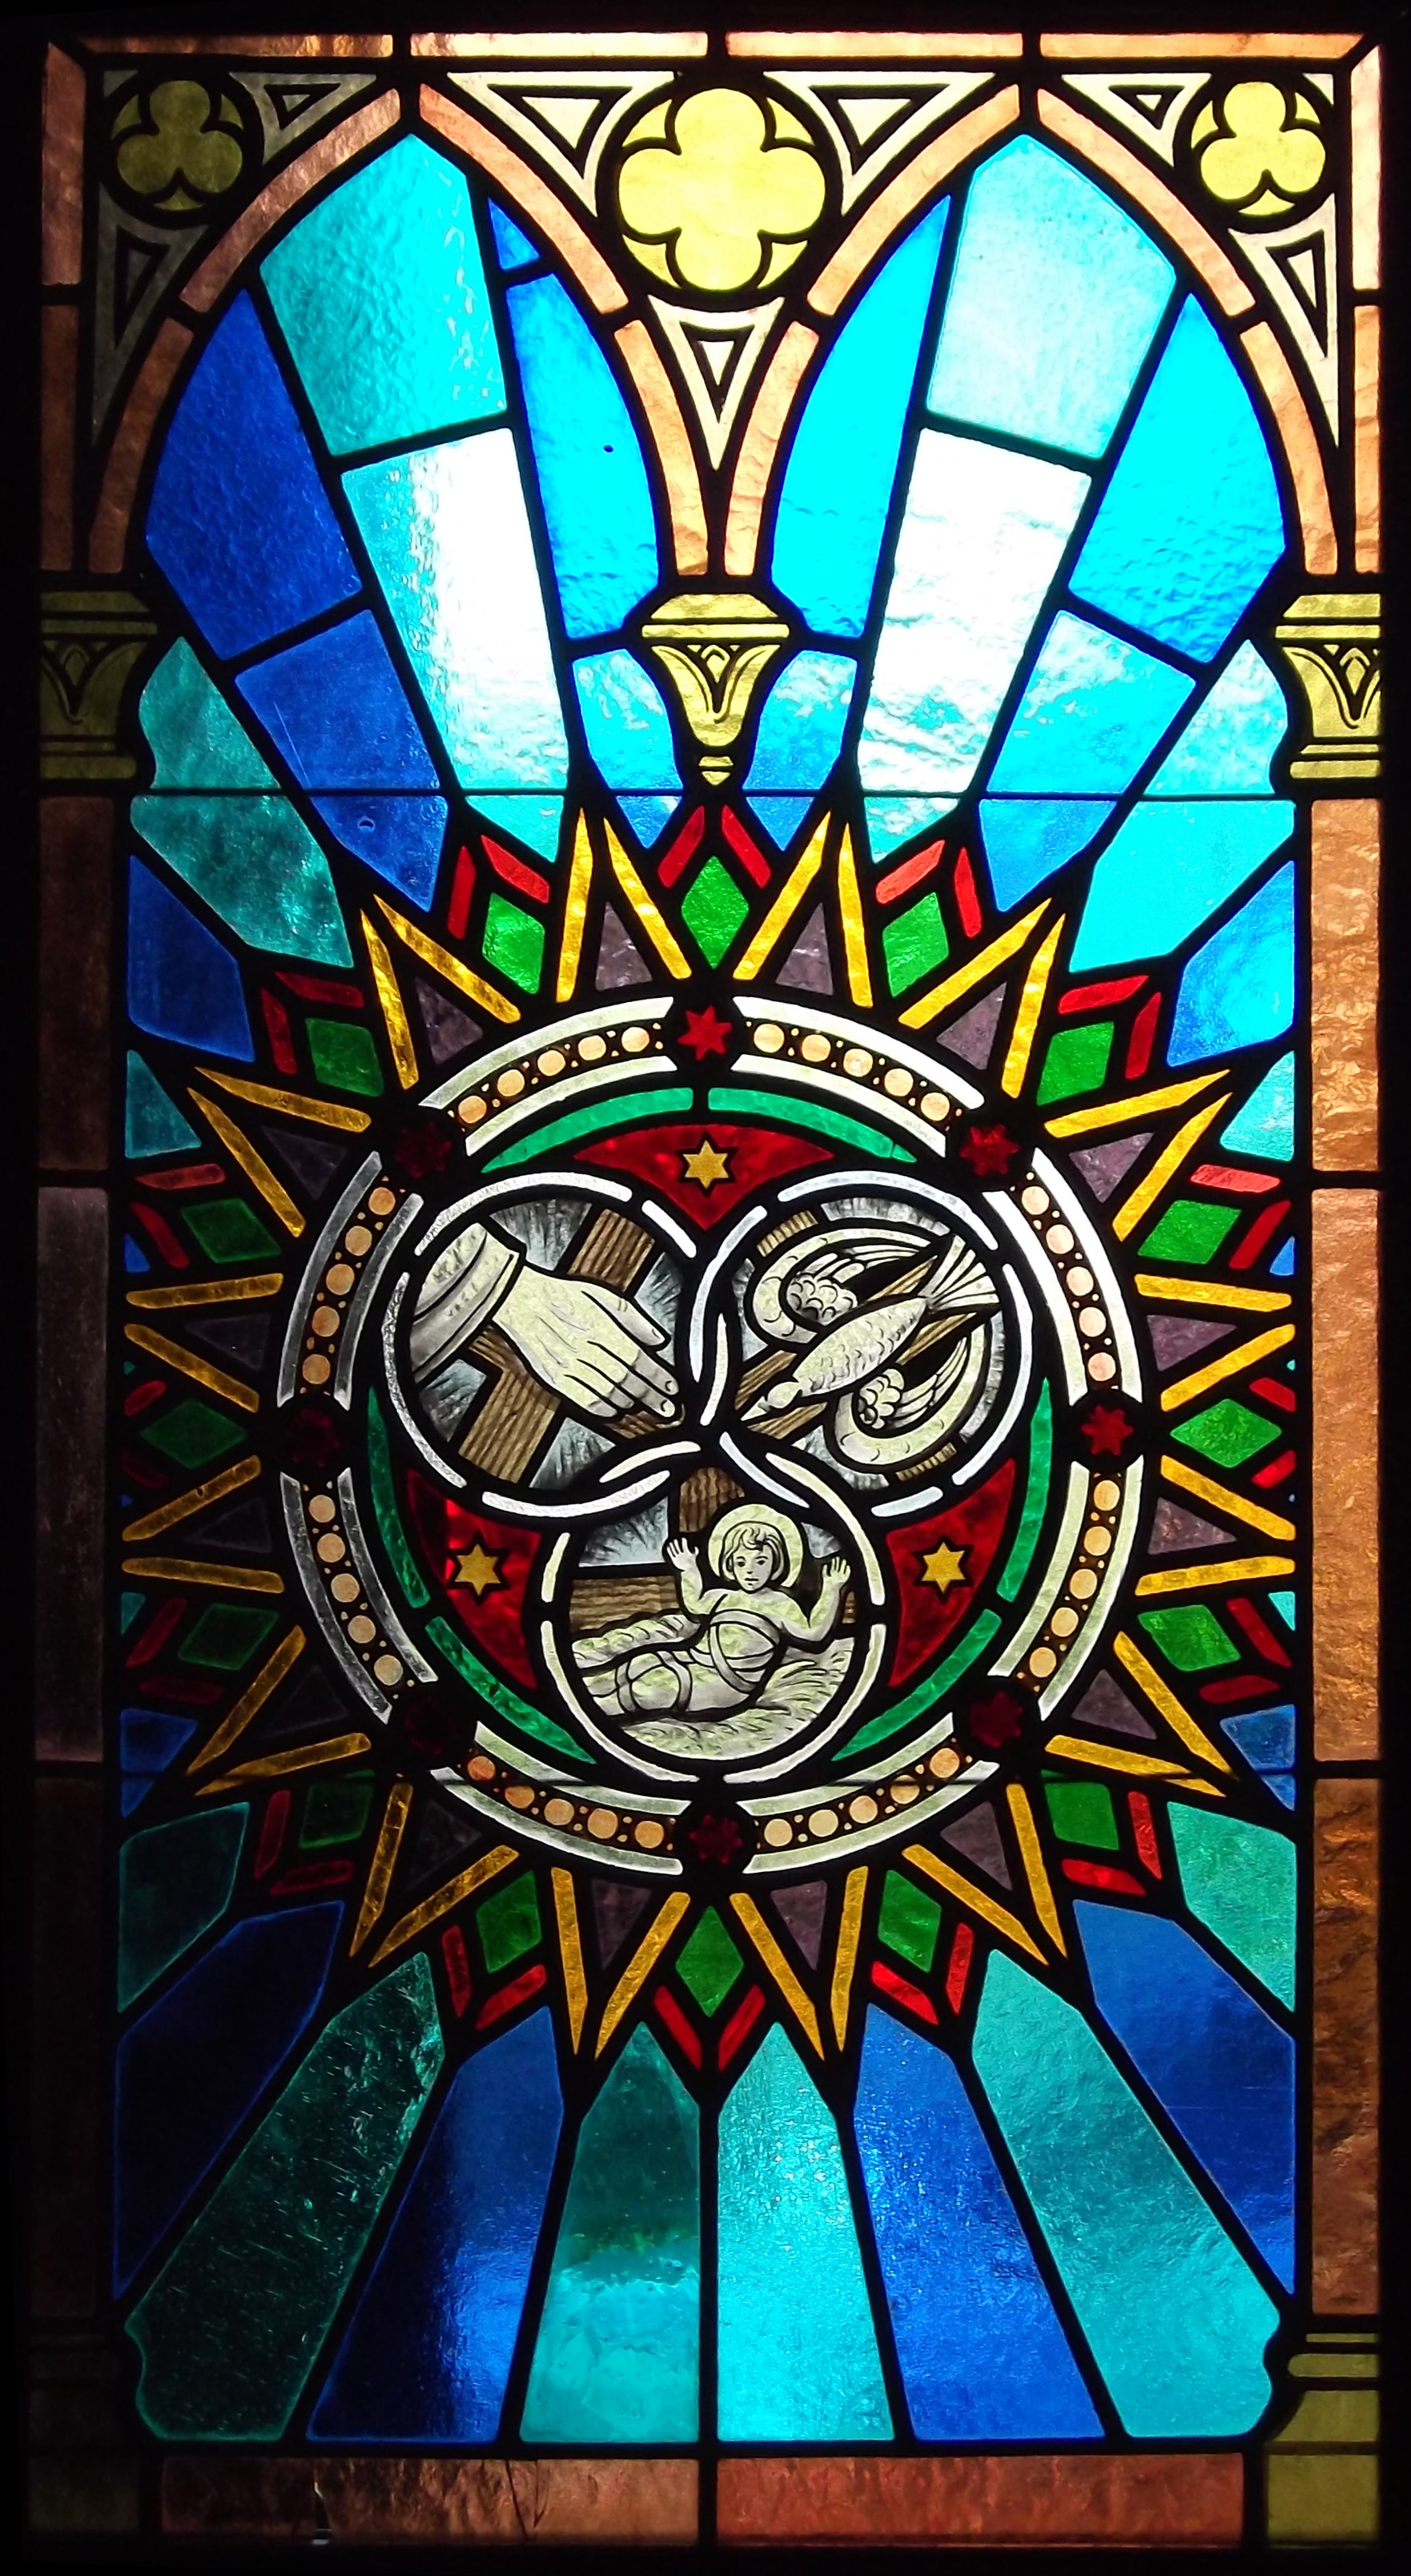 Filepetropolis holy trinity circles symbol stained glass window filepetropolis holy trinity circles symbol stained glass windowg biocorpaavc Image collections